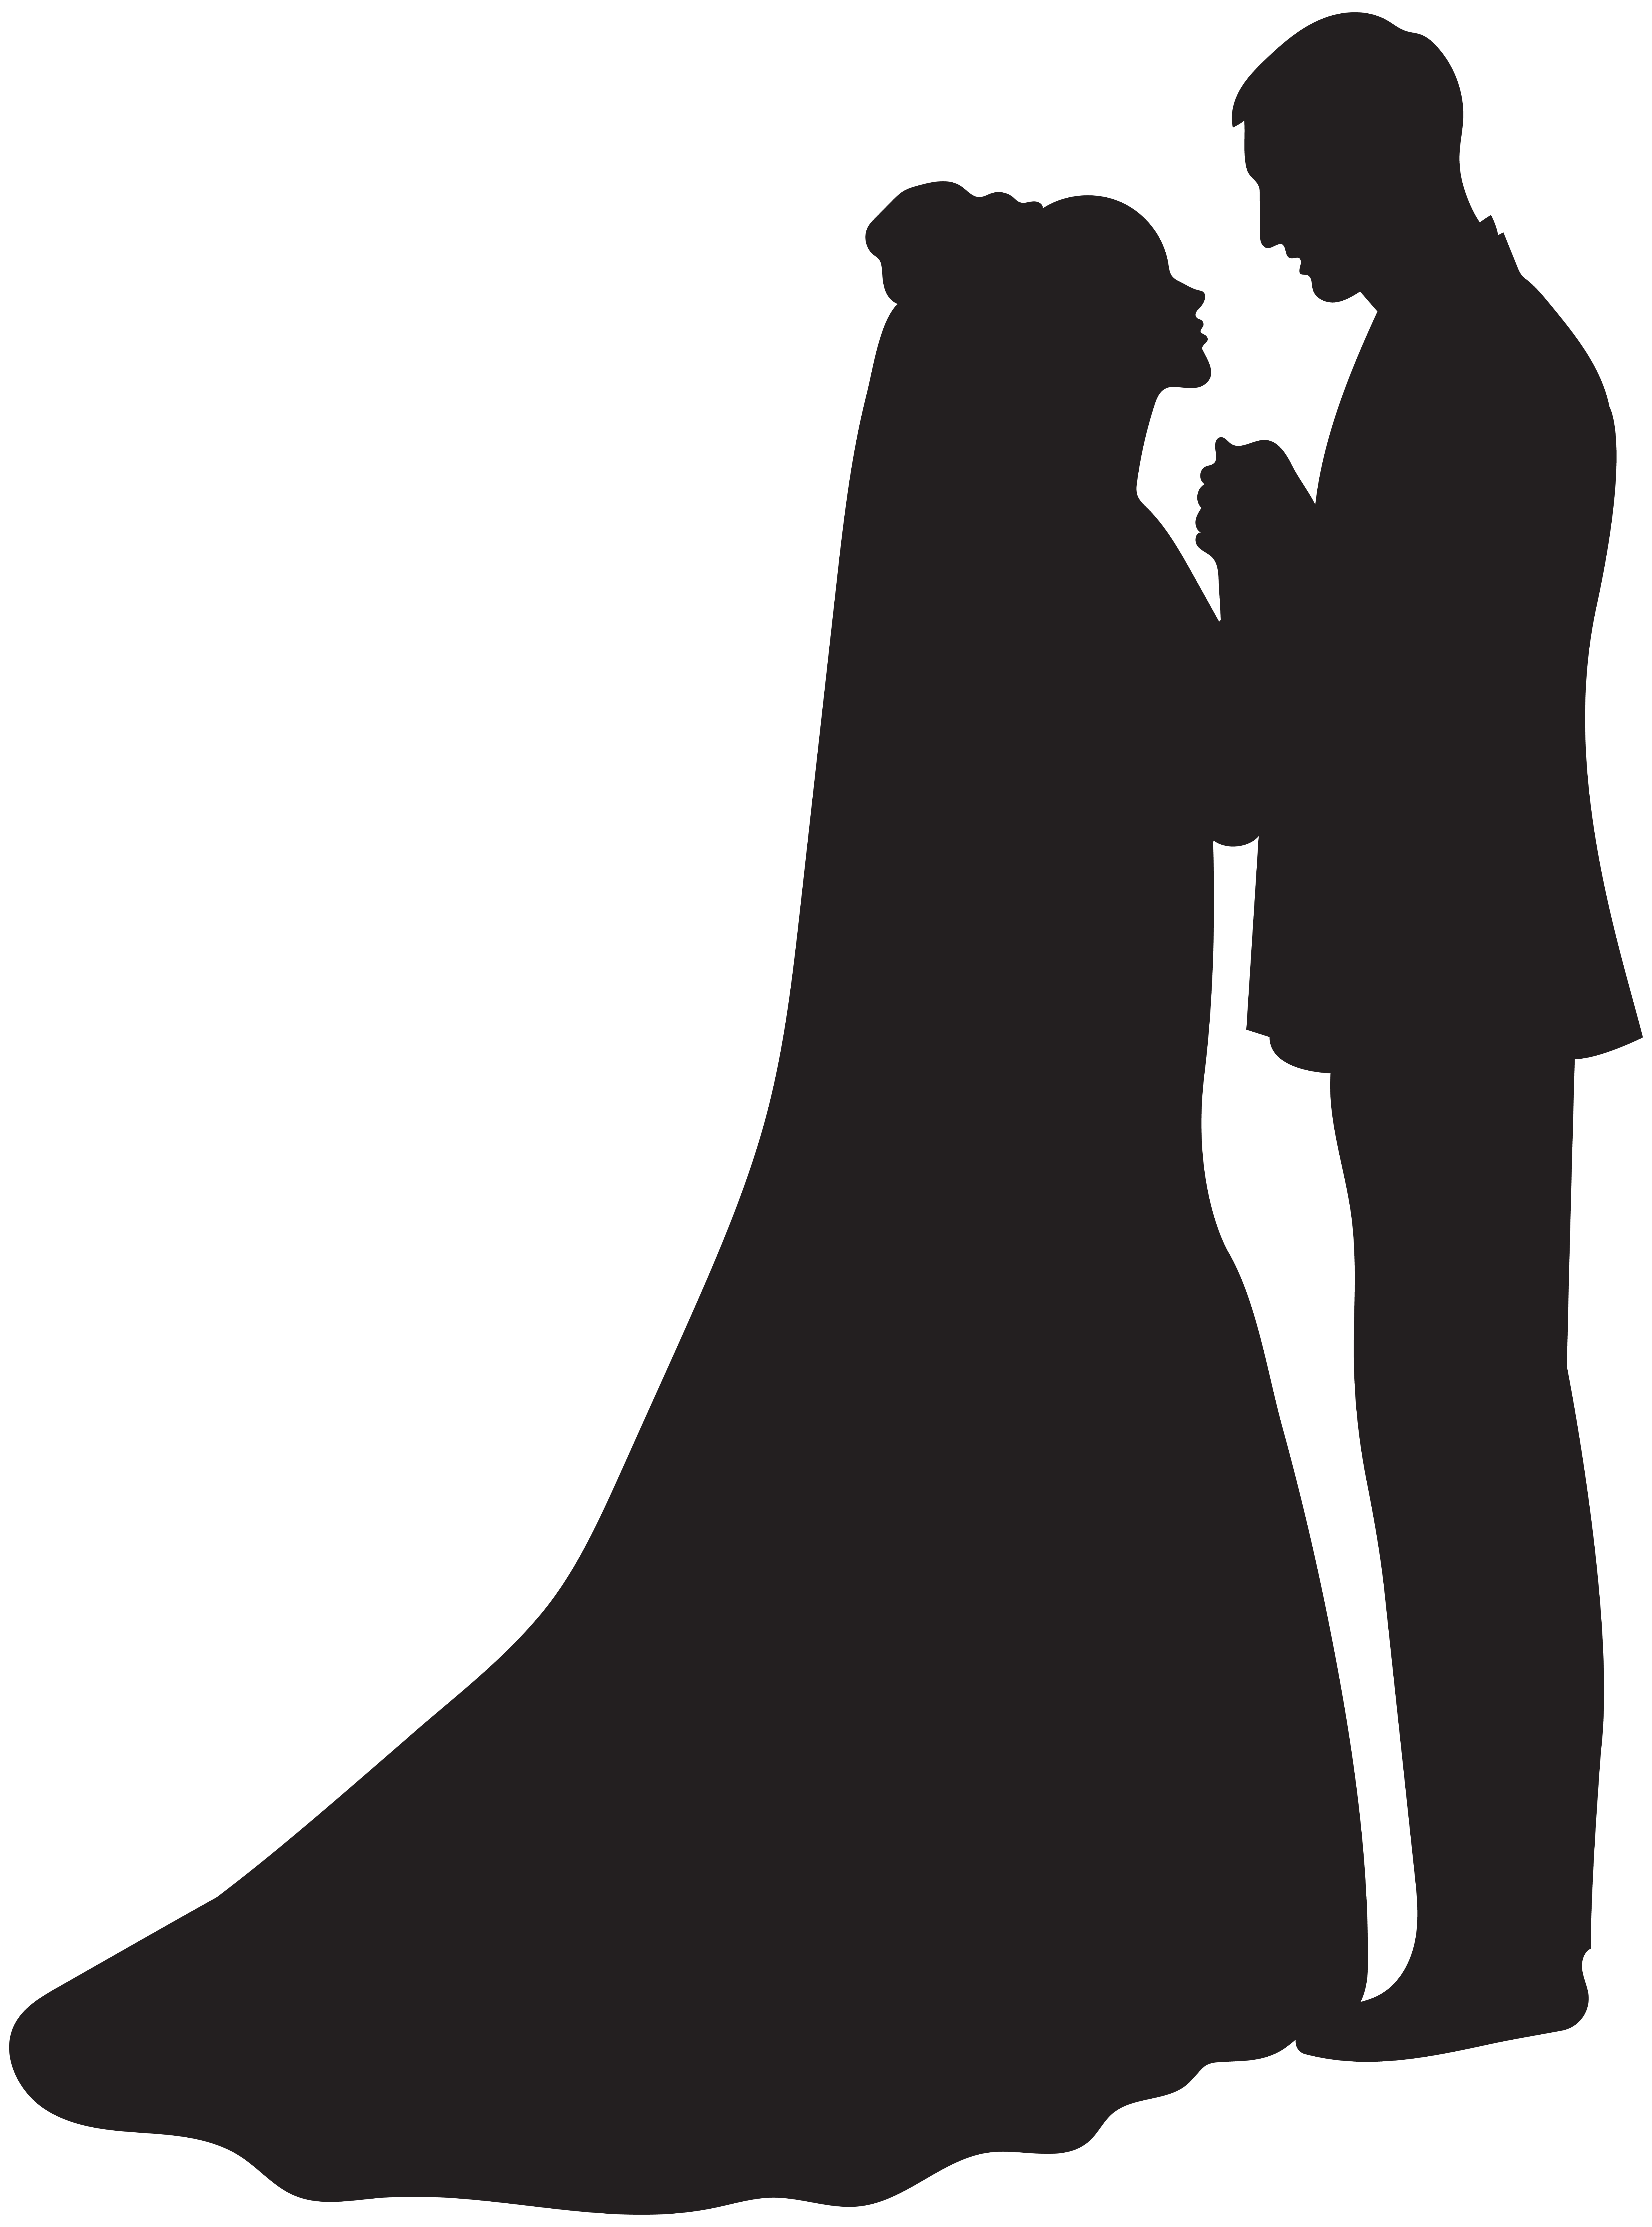 Bride and groom silhouette png. Clip art gallery yopriceville